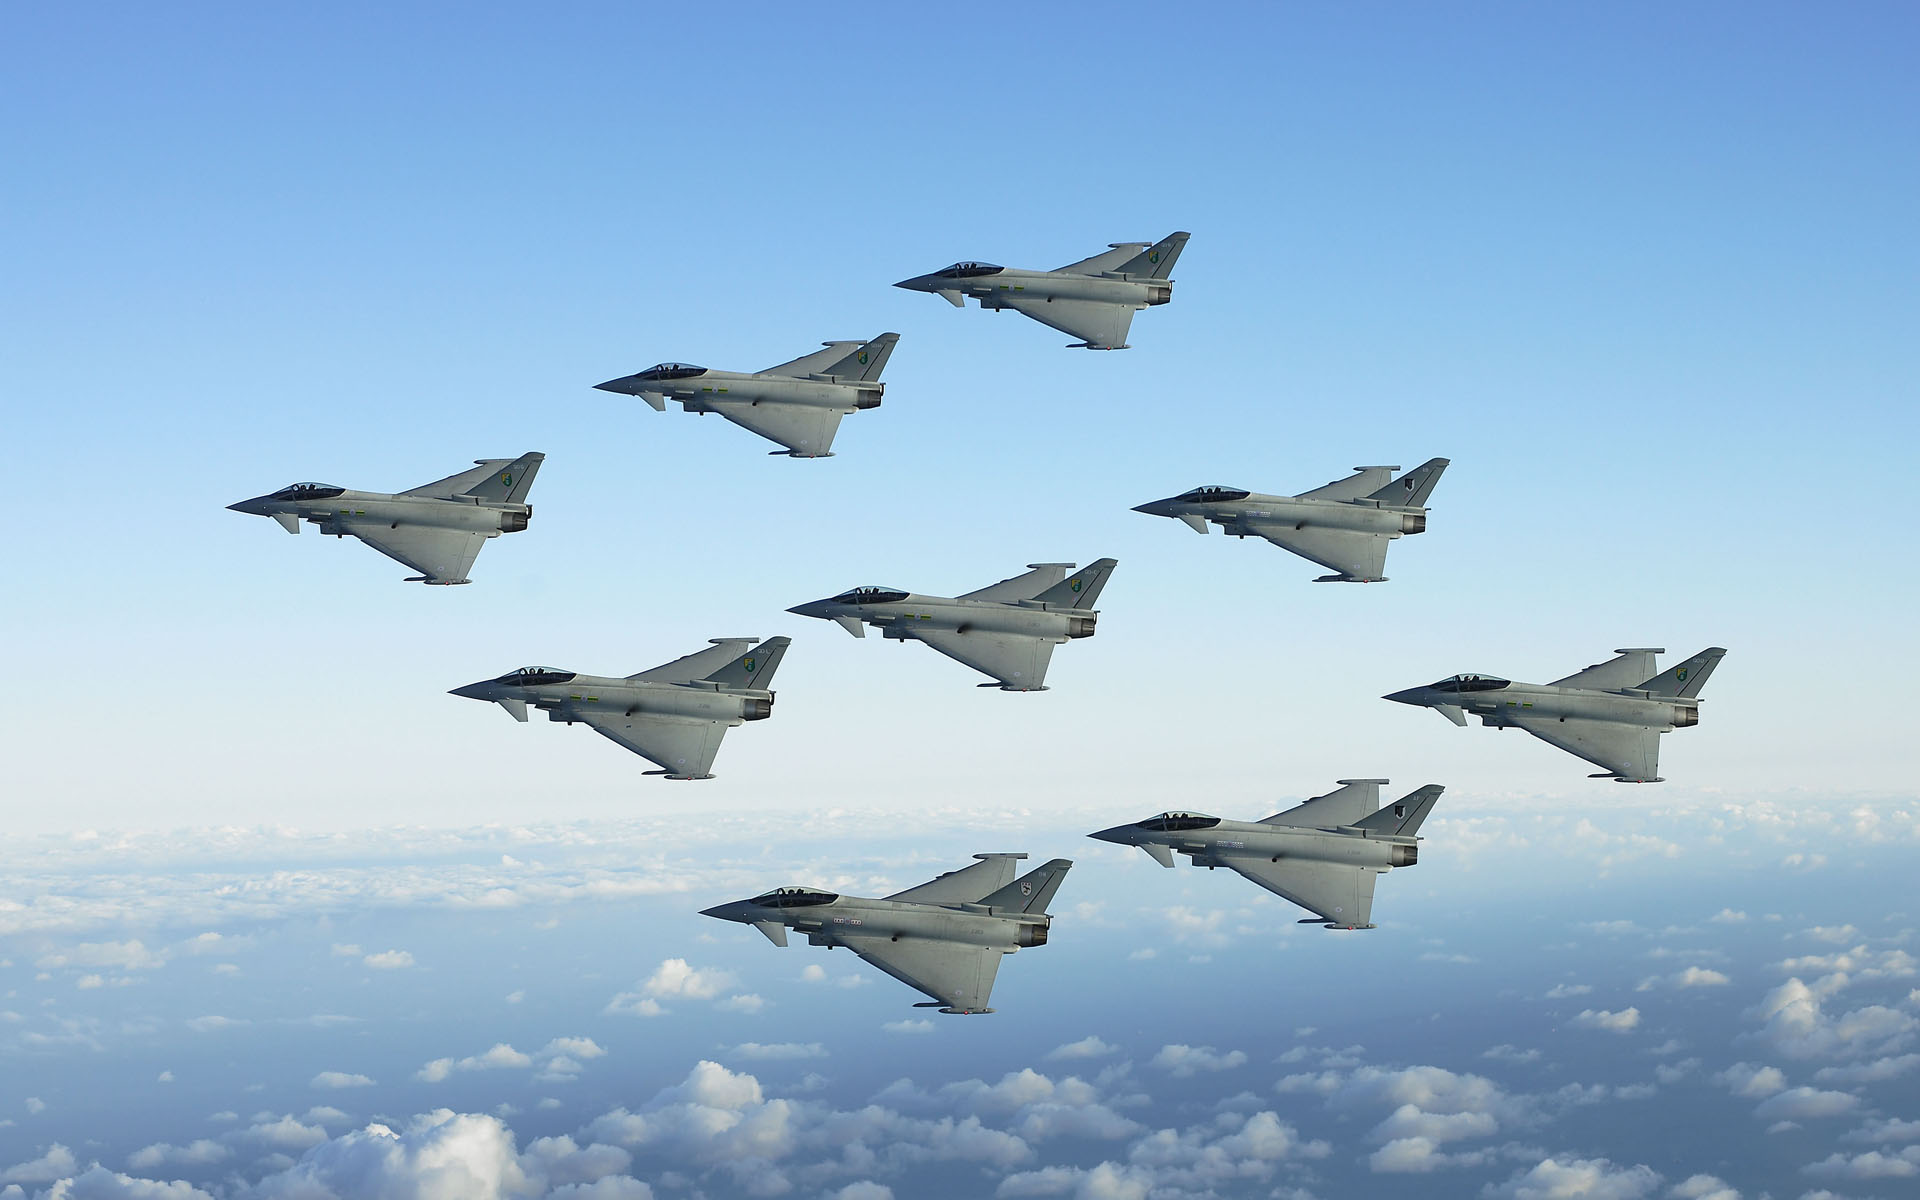 jet fighters formation wide